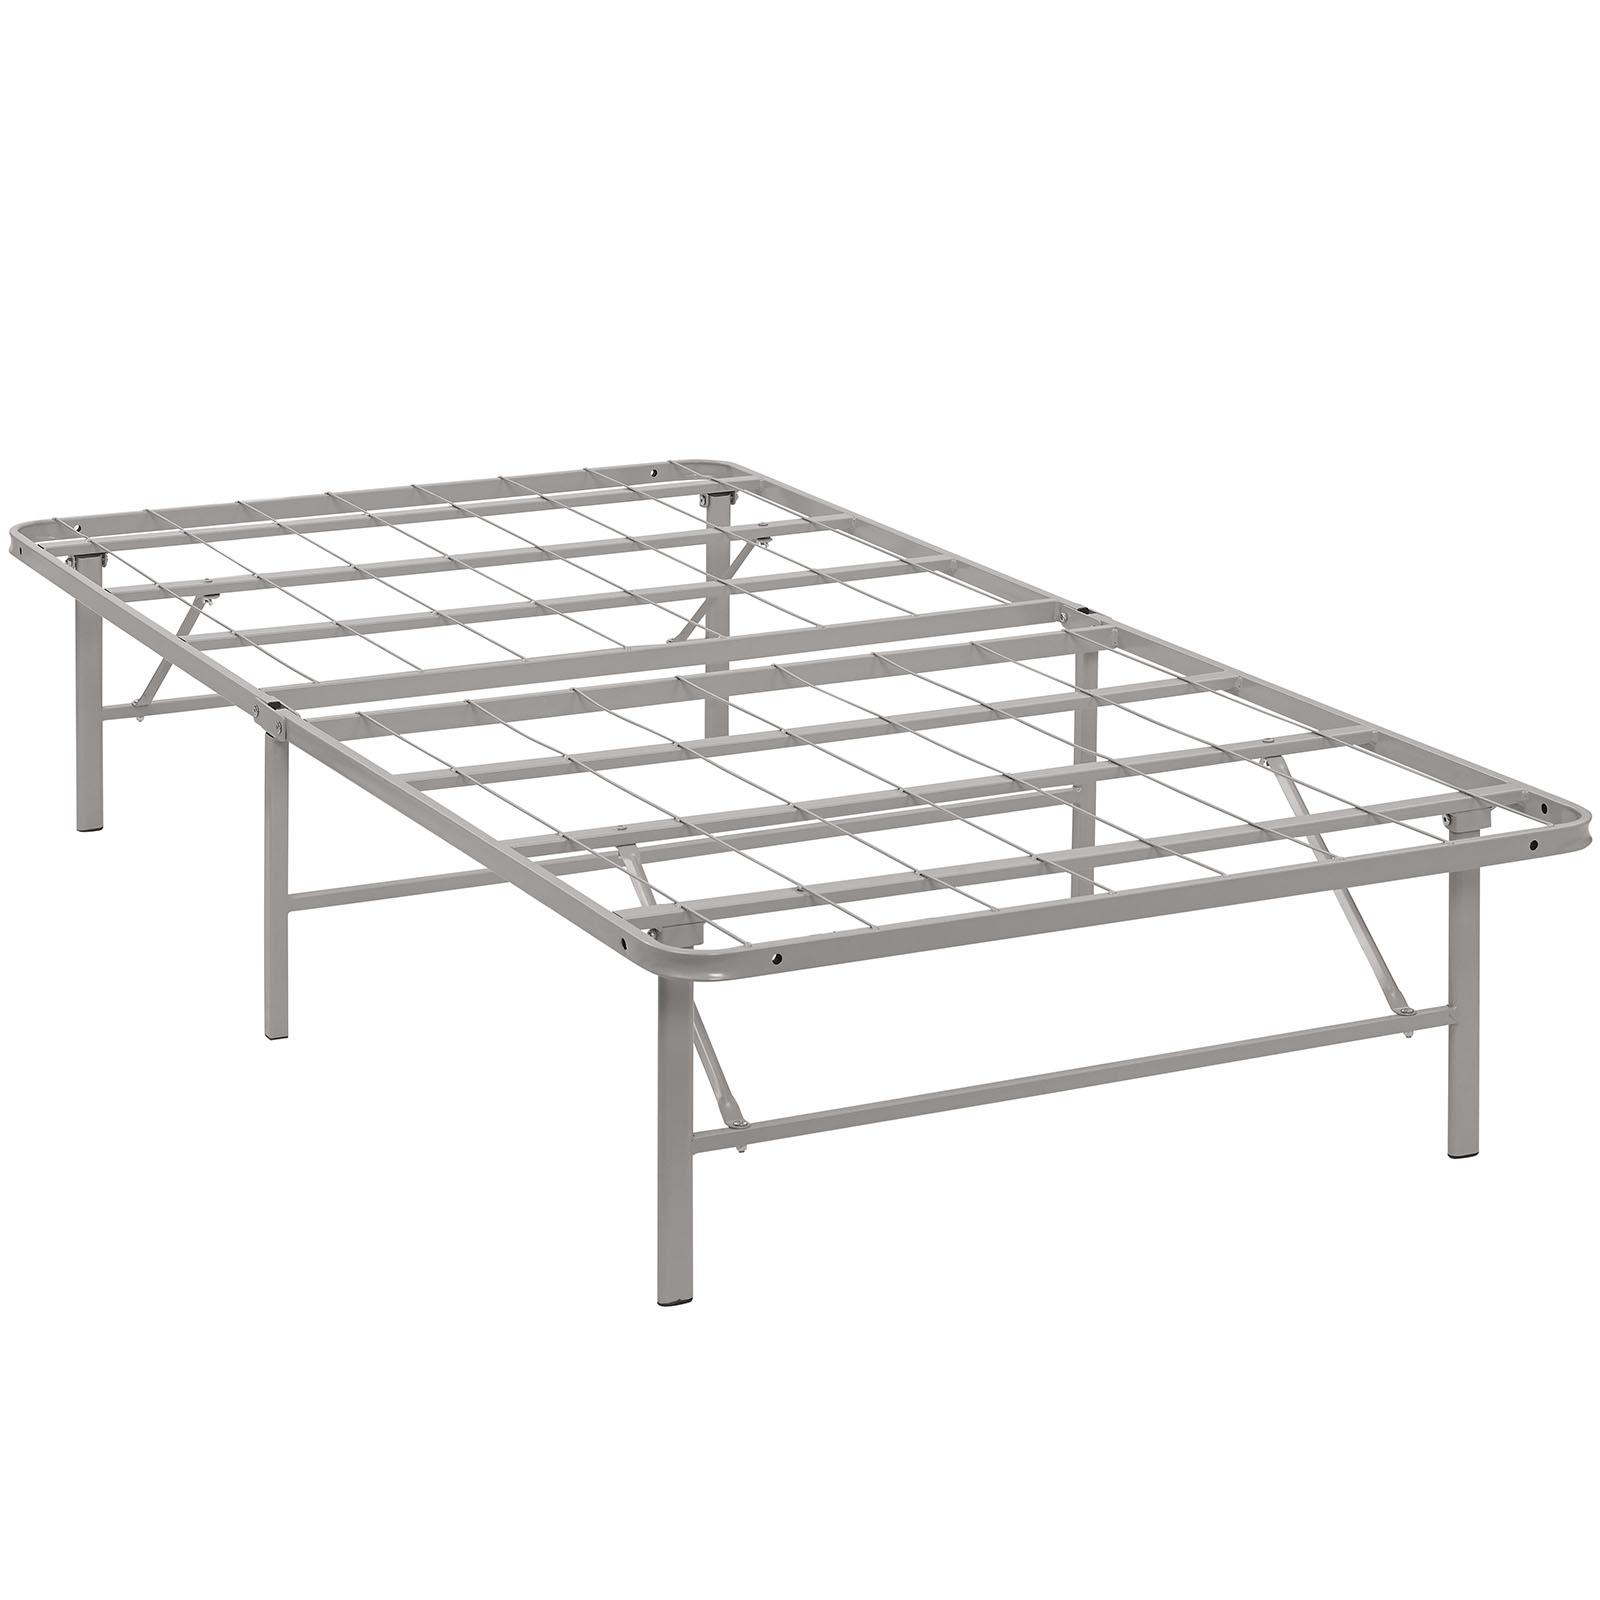 Modern Contemporary Urban Design Bedroom Twin Size Platform Bed Frame, Grey Gray, Metal Steel